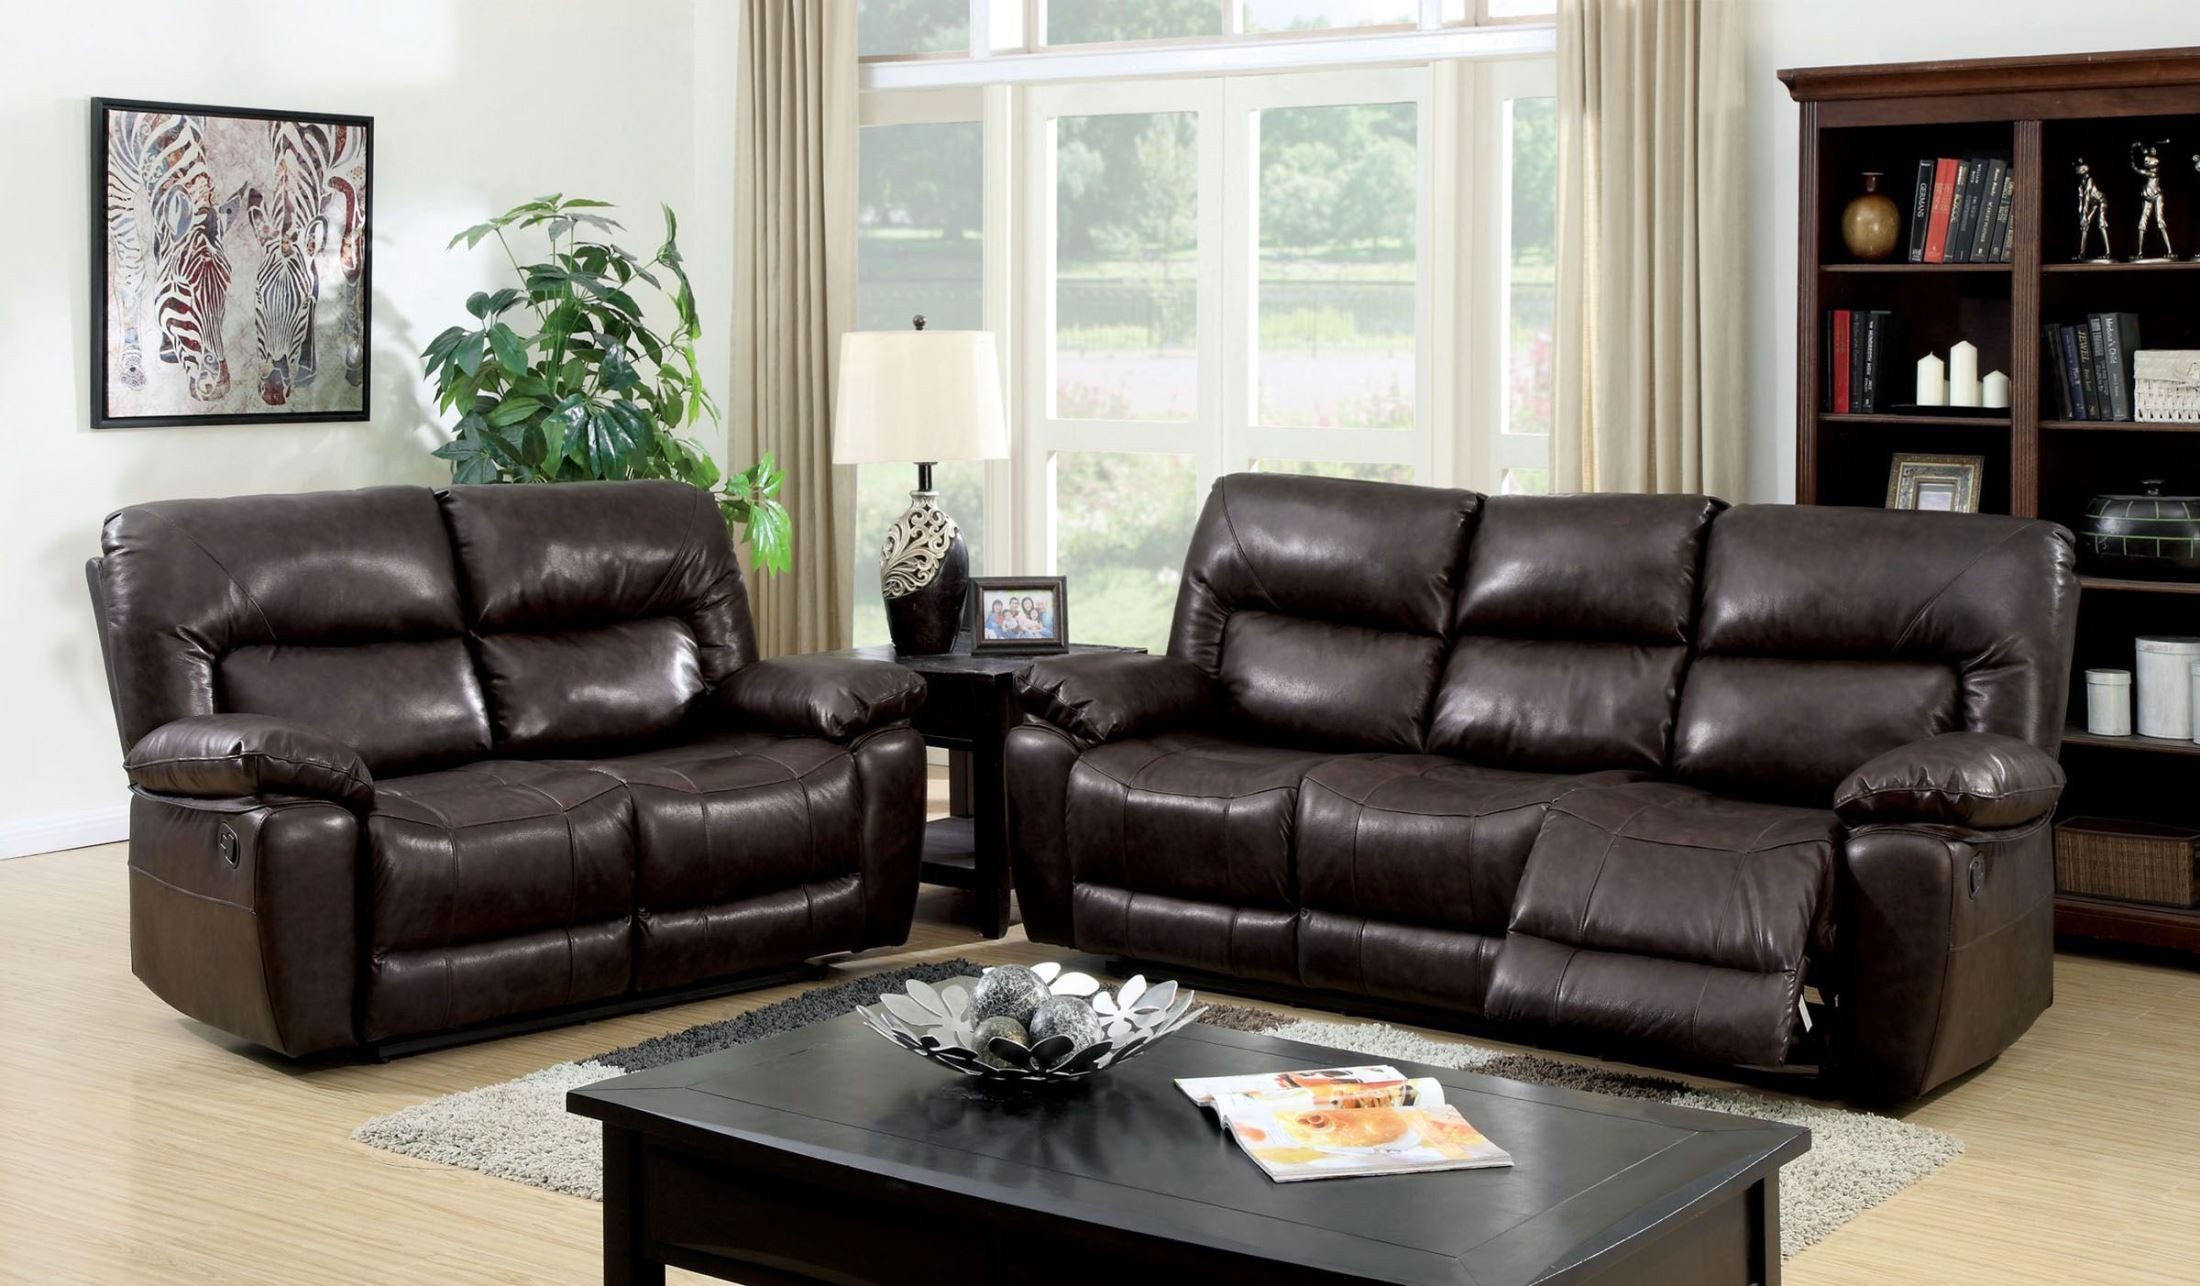 Stallion top grain leather match reclining living room set Reclining living room furniture